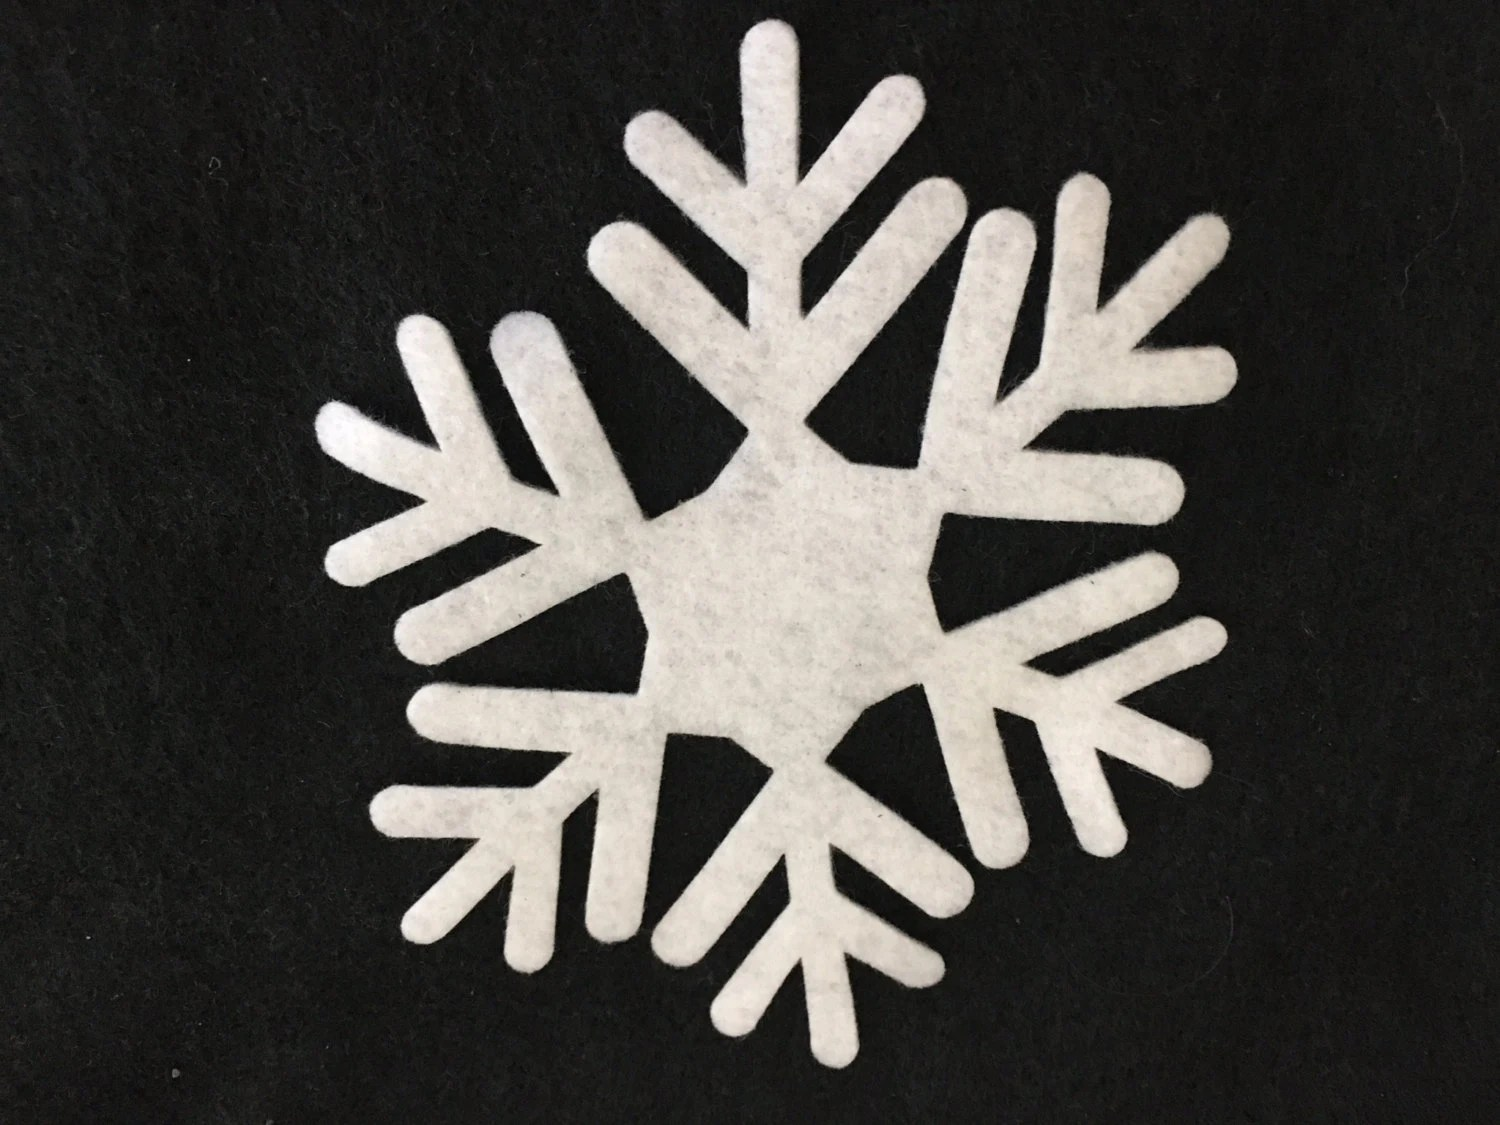 Felt Snowflake 2 Cuts Winter Snowflakes Cut Out Felt